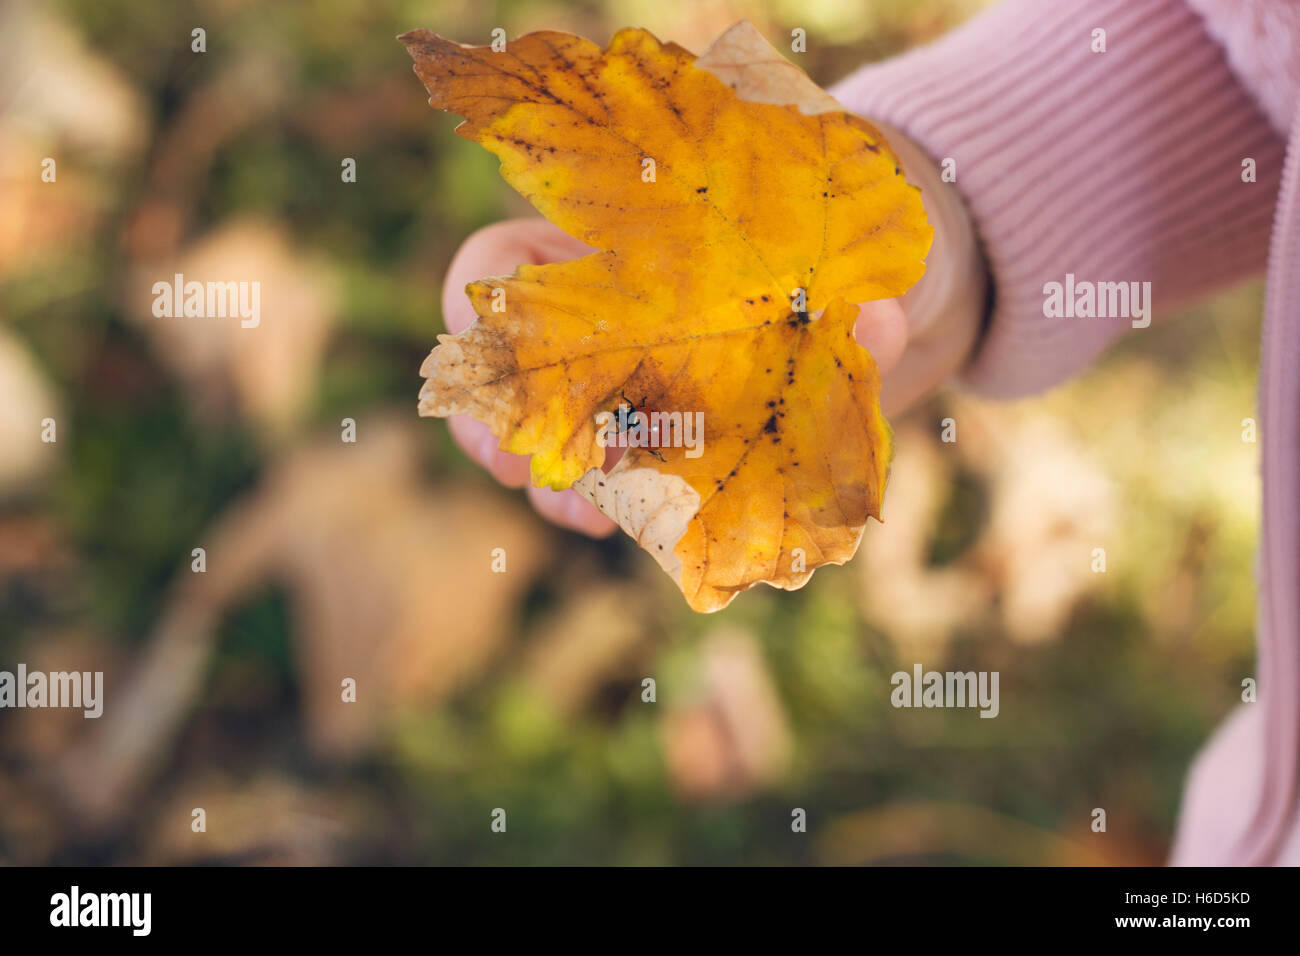 Autumn in the park; little girl holding a yellow leaf with a ladybug on it Stock Photo